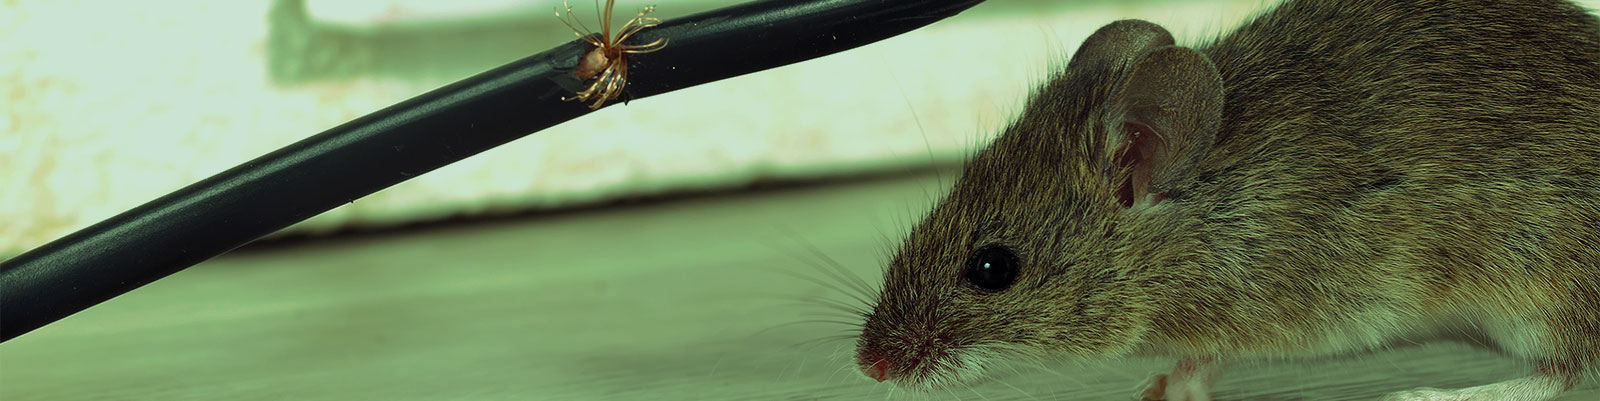 Pest Control Professionals on the Front Line